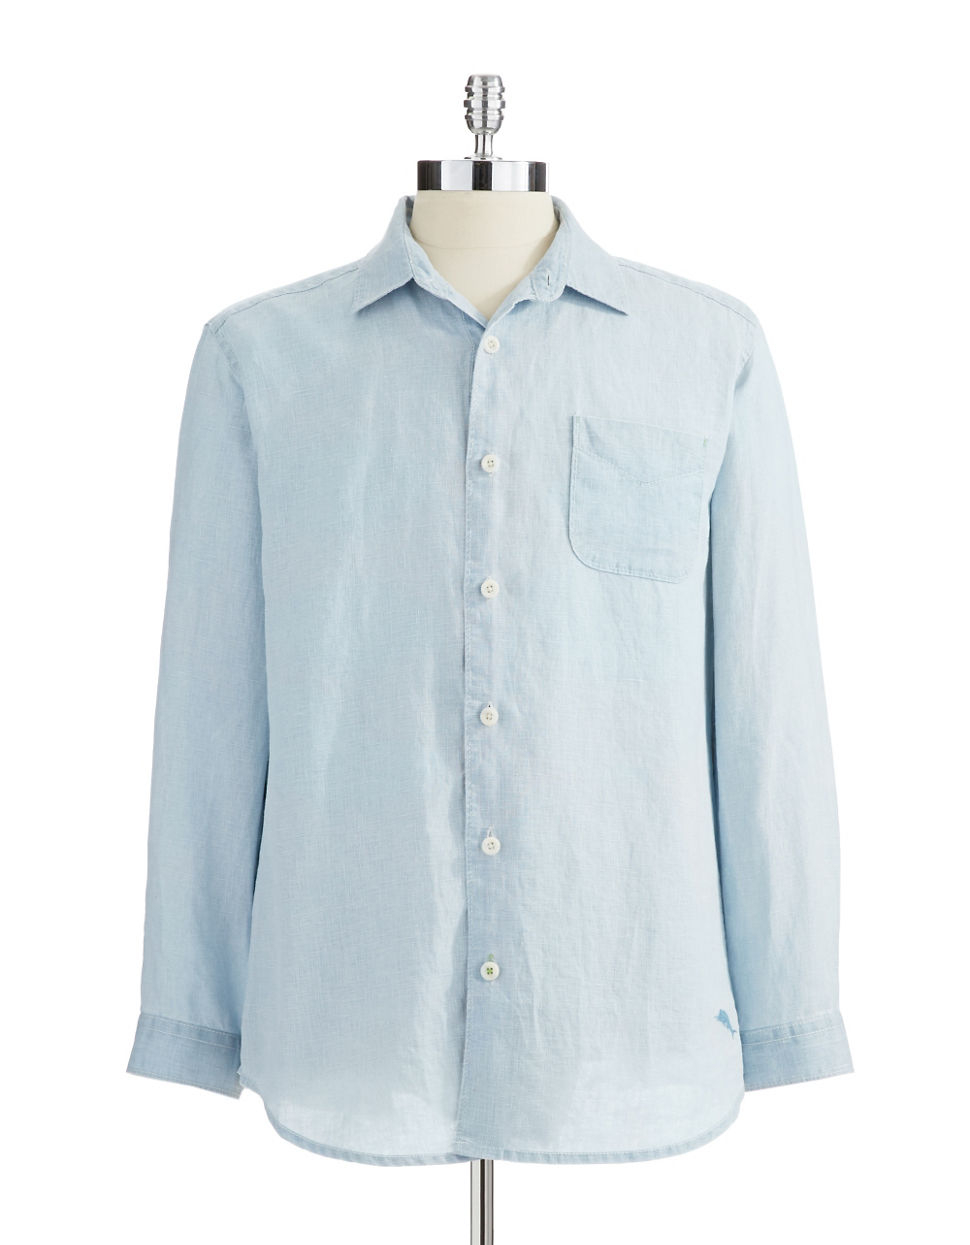 Lyst tommy bahama button down shirt in blue for men for Tommy bahama christmas shirt 2014